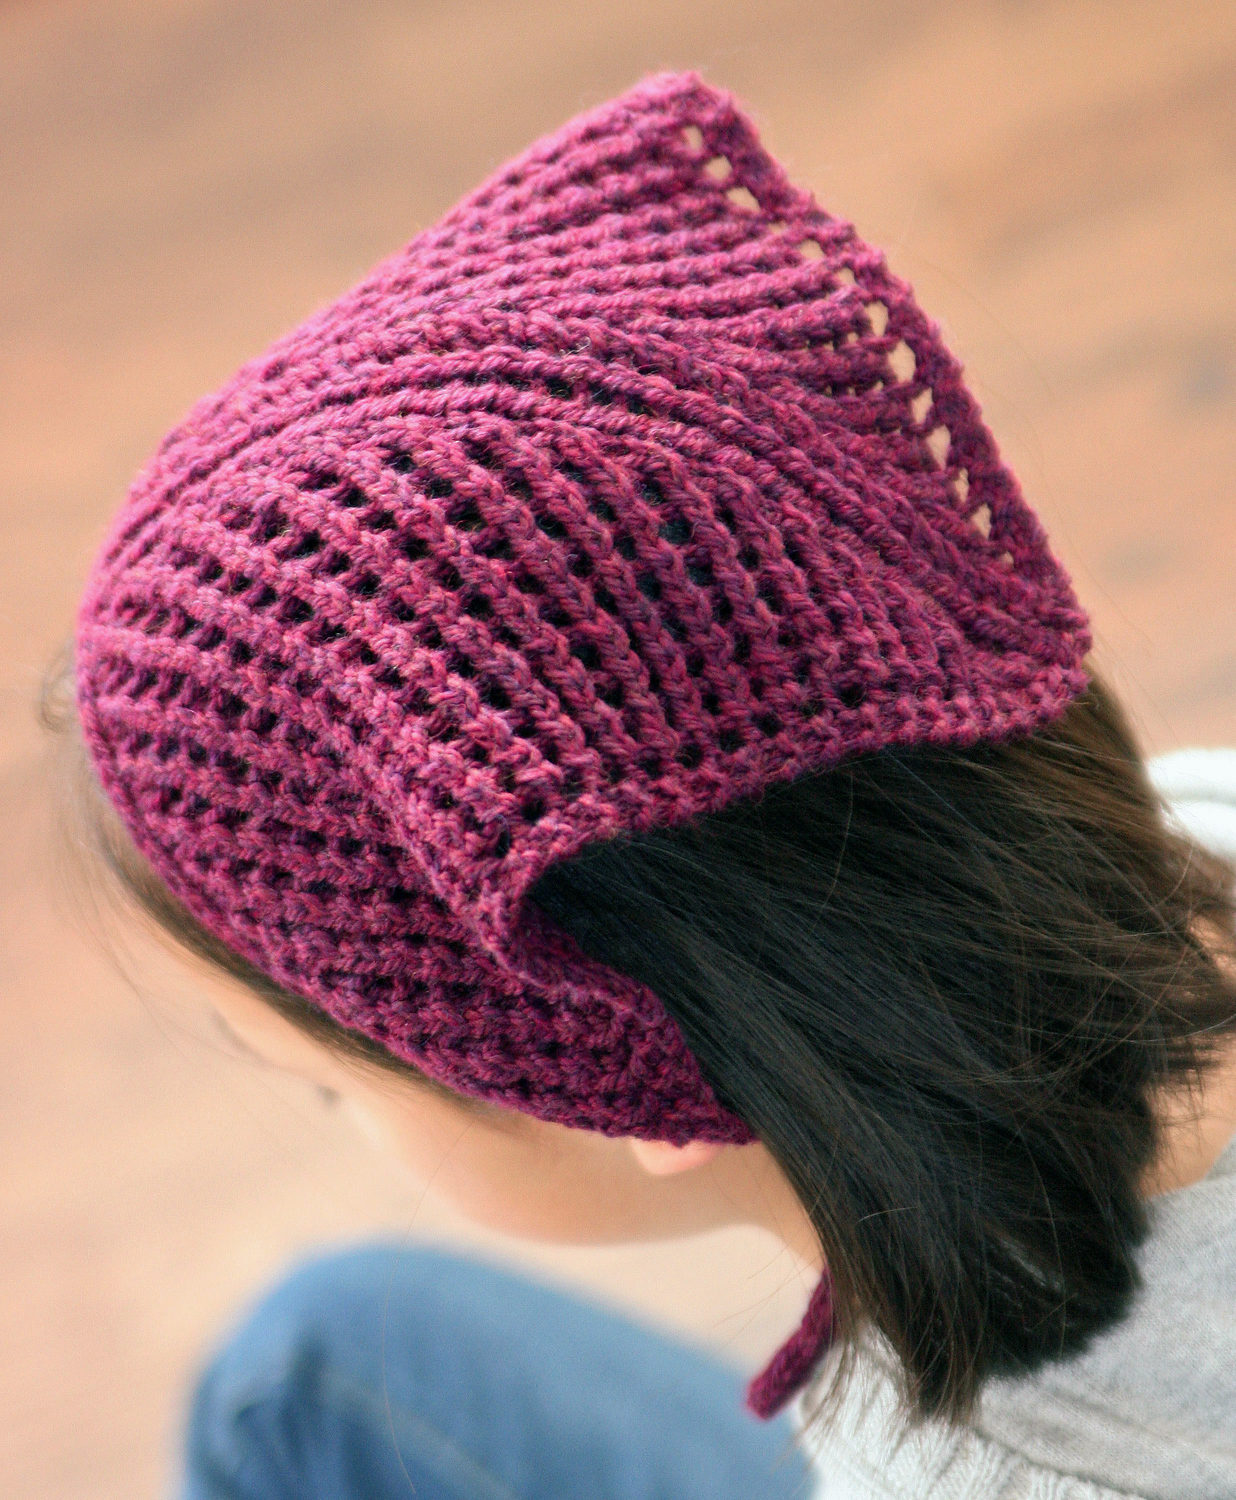 Free Knitting Pattern for Whimsy Kerchief